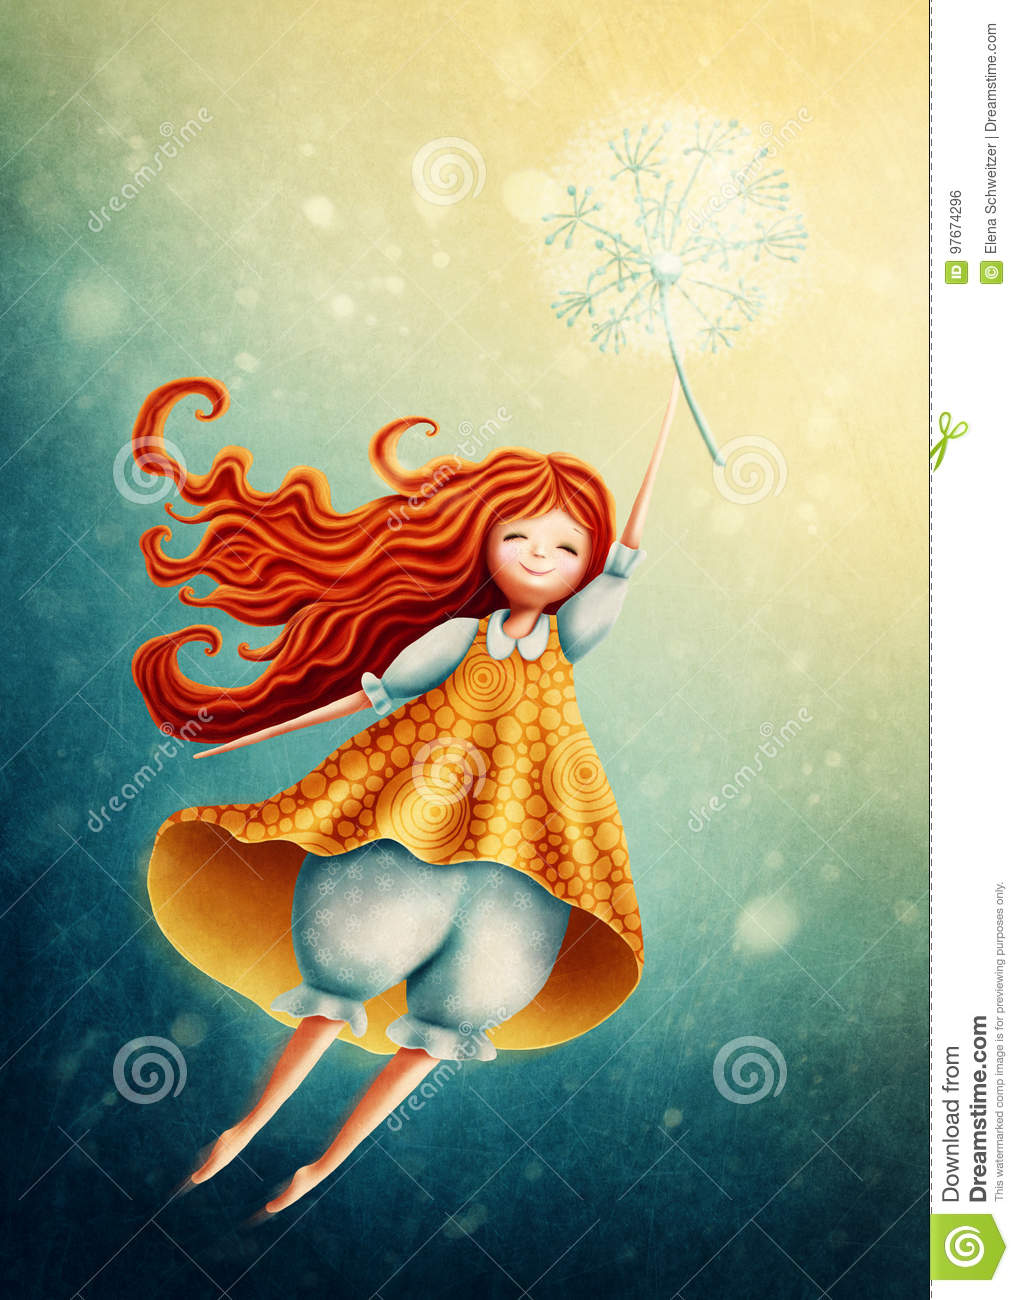 Girl flying in the sky with dandelion